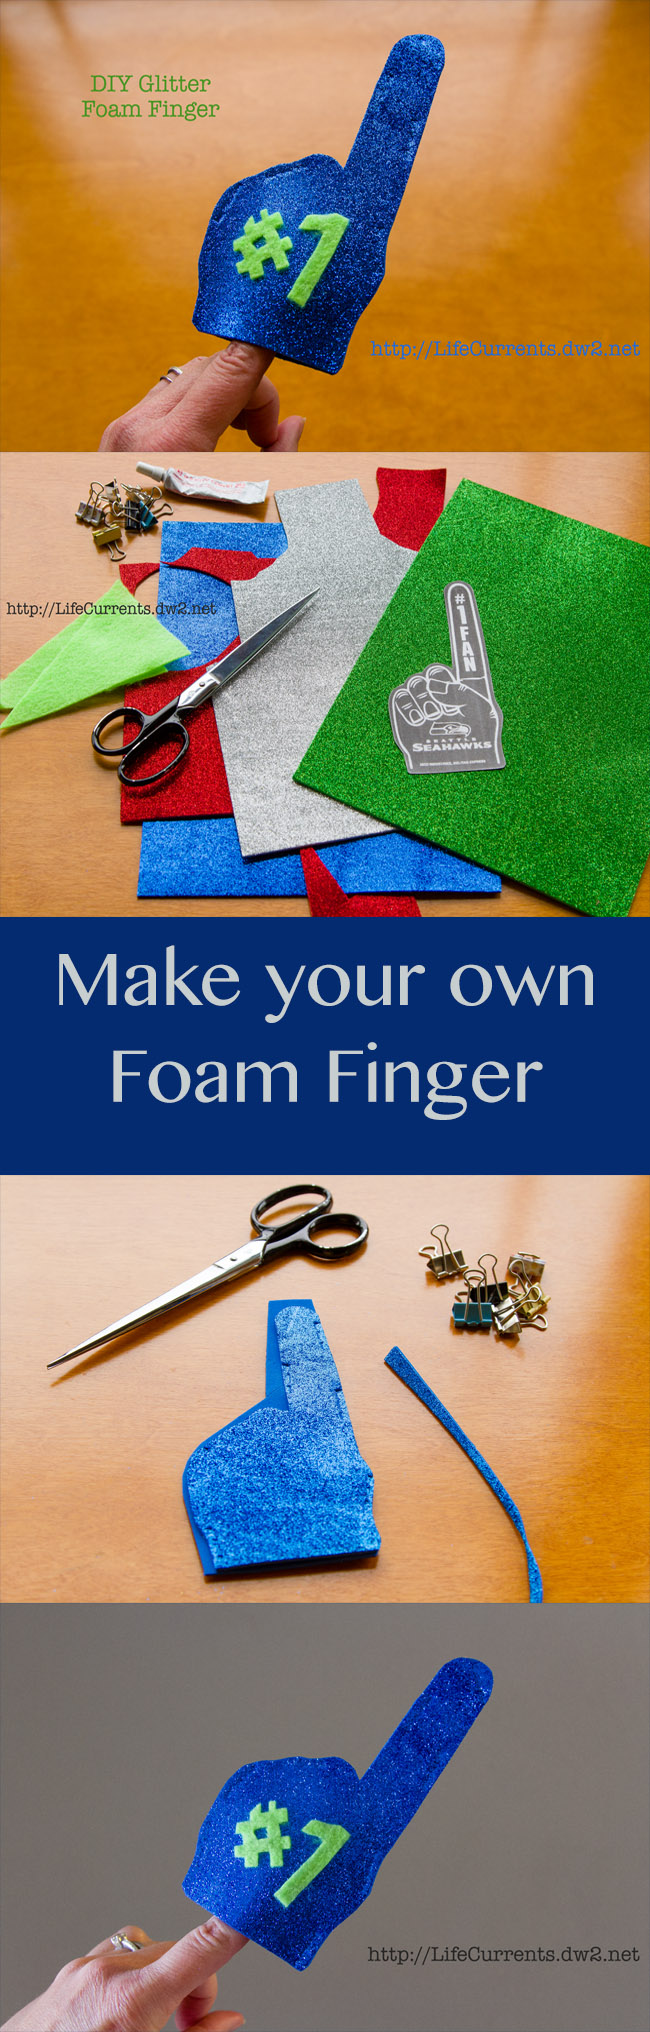 DIY Glitter Foam Finger customize yours for your favorite team!